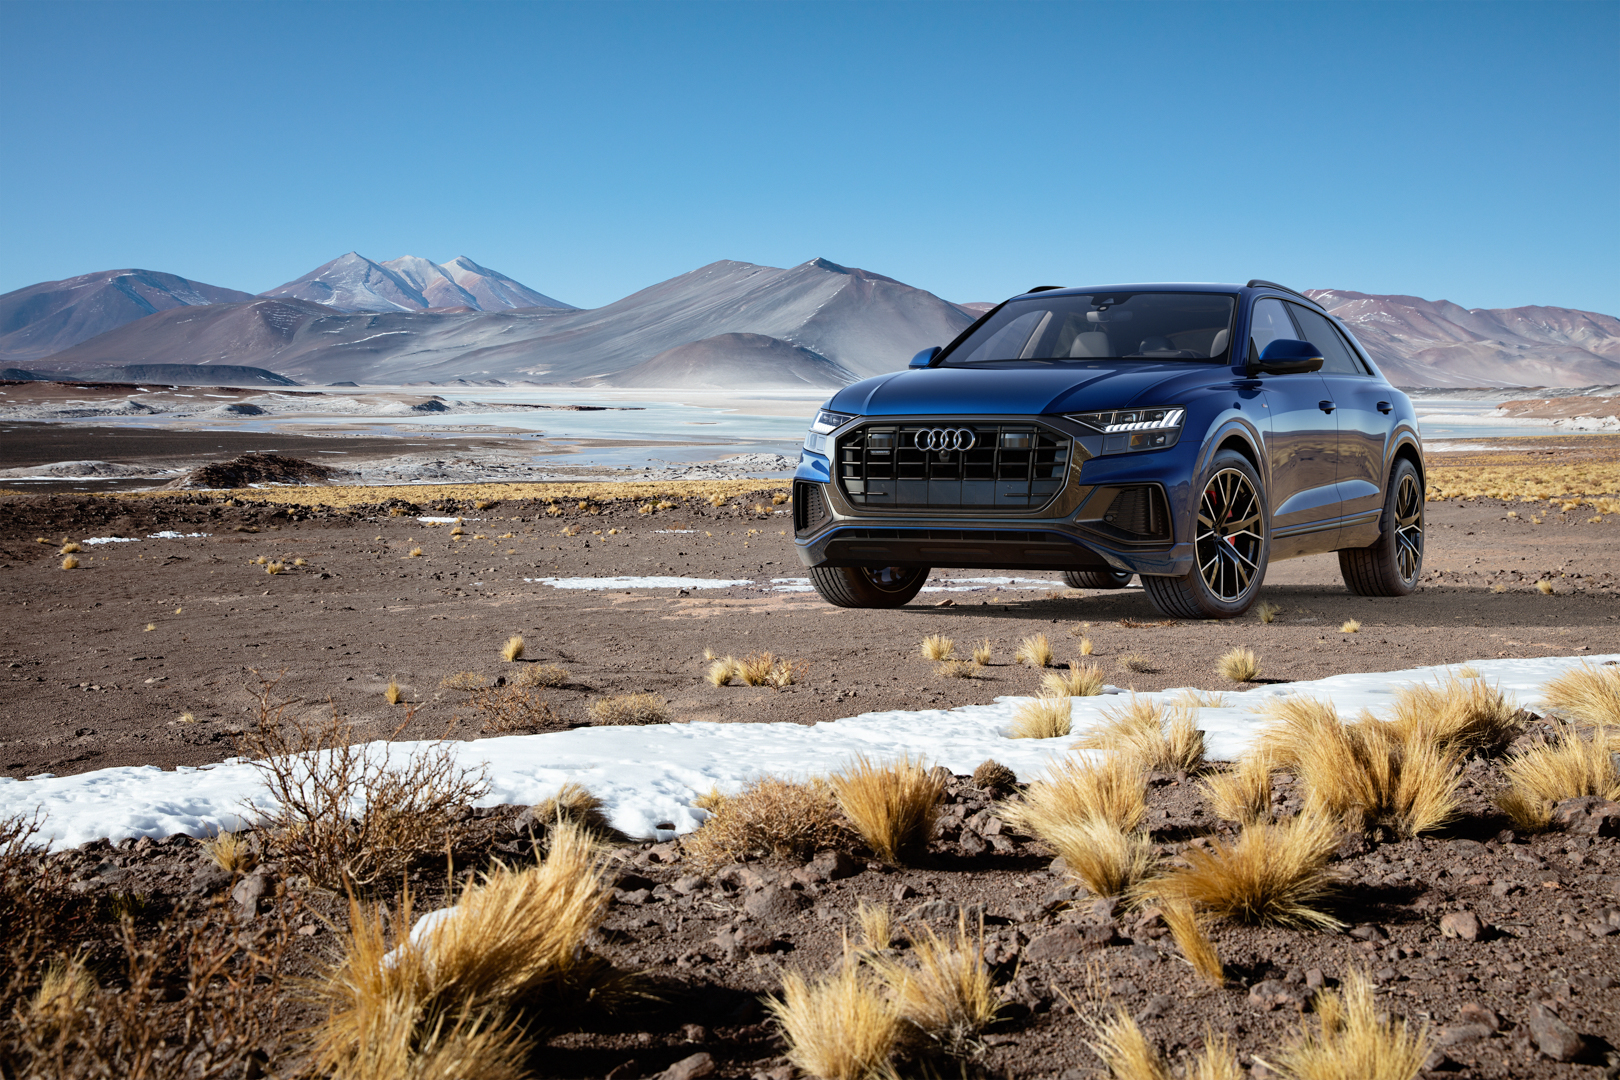 Which To Buy Audi Q8 30t Or Audi E Tron